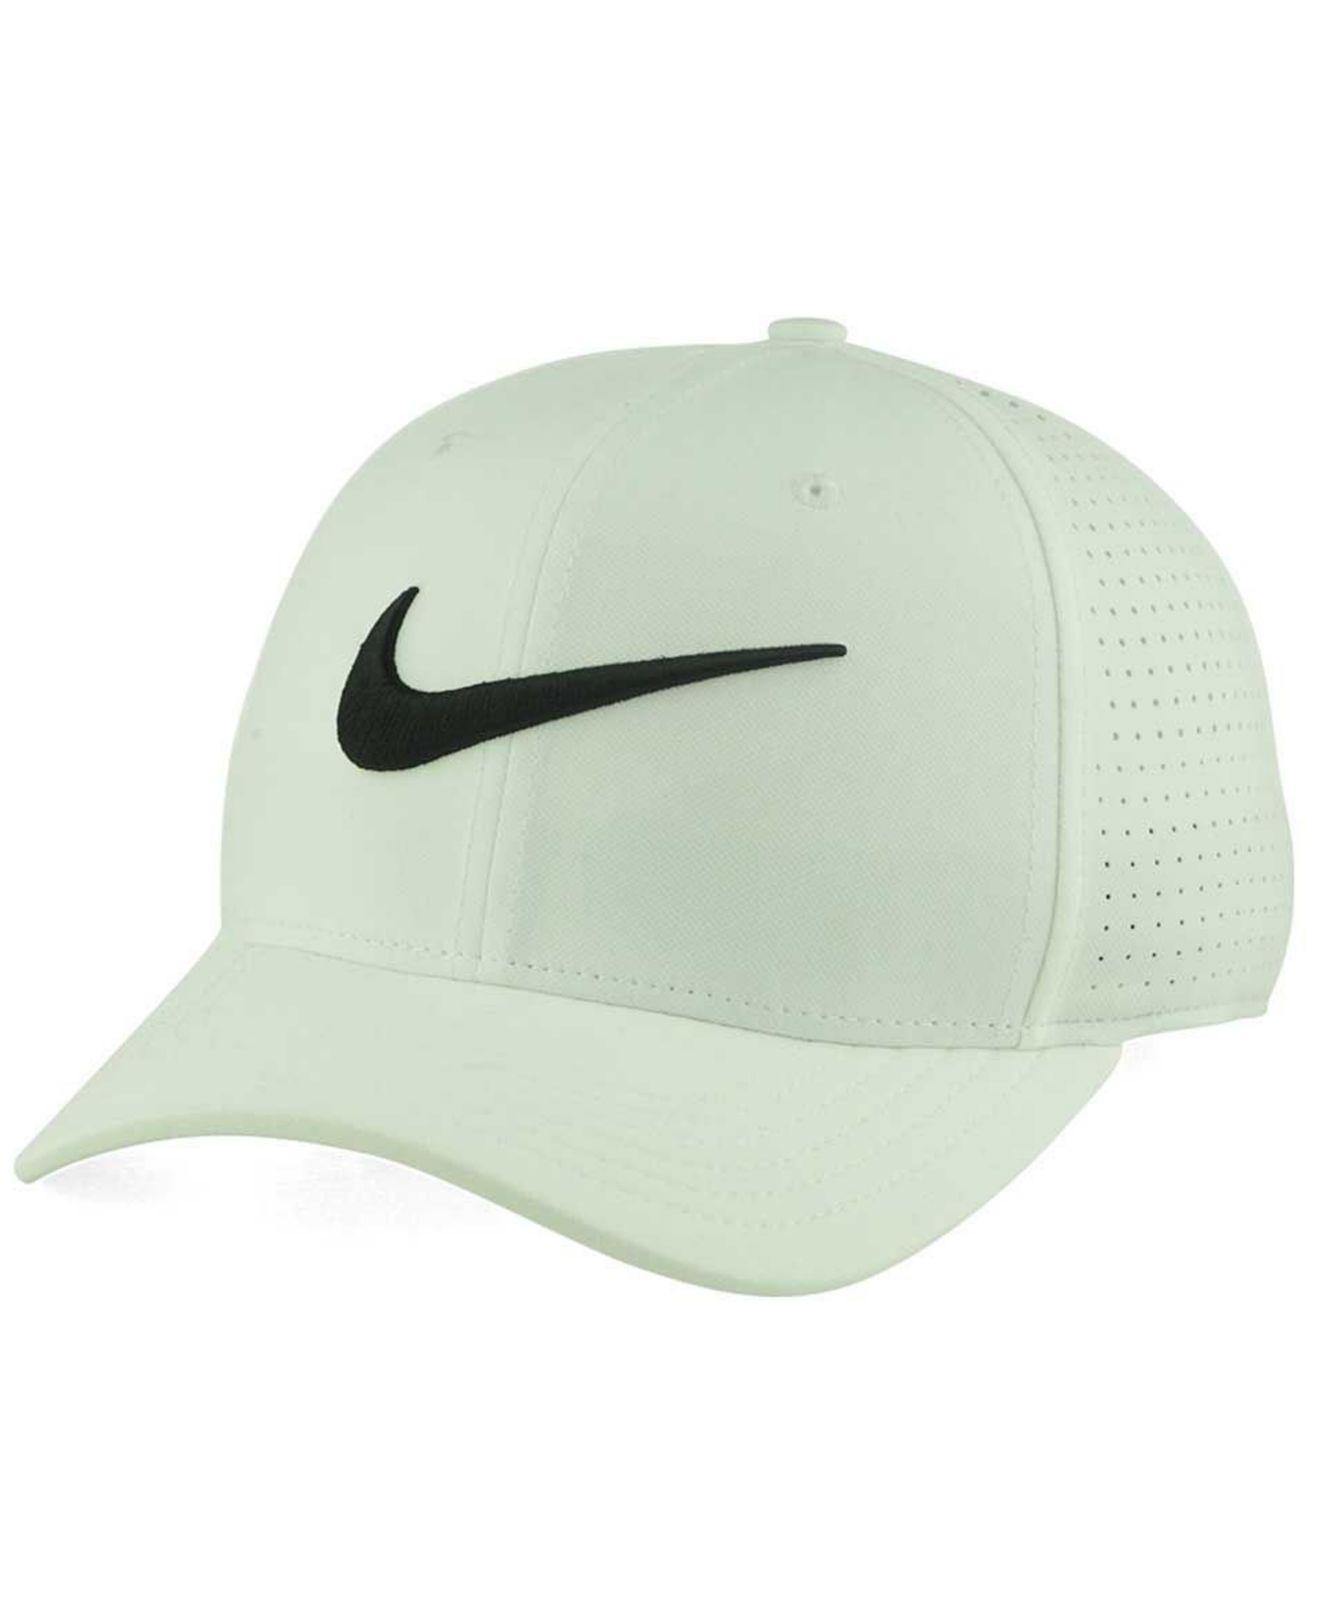 detailed look 0141a cc9f0 Lyst - Nike Vapor Flex Ii Cap in White for Men